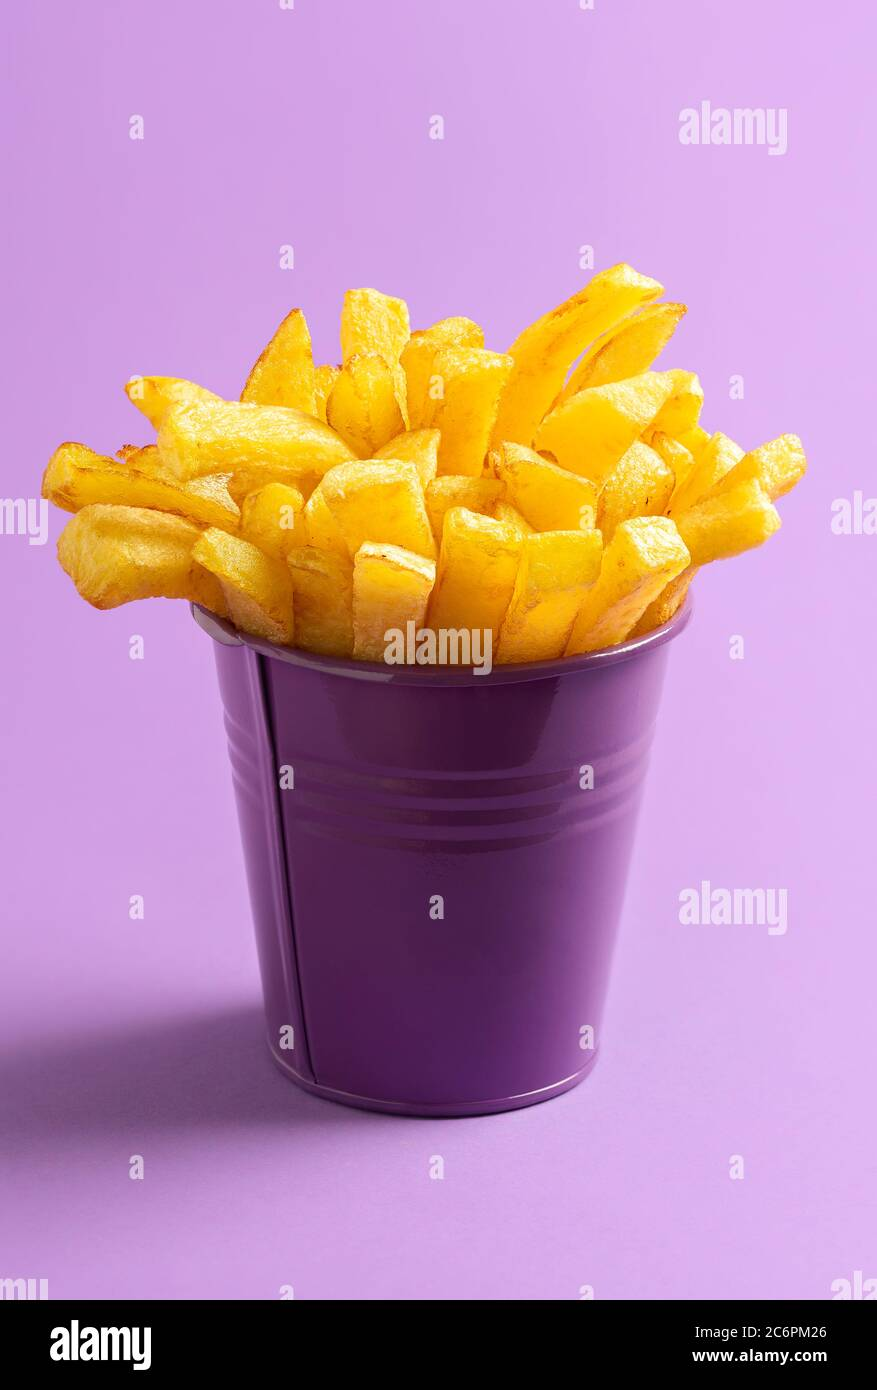 Bucket Of French Fries Isolated On Purple Seamless Background Golden Deep Fried Potatoes In A Purple Bucket Homemade Finger Chips Fast Food Recipe Stock Photo Alamy